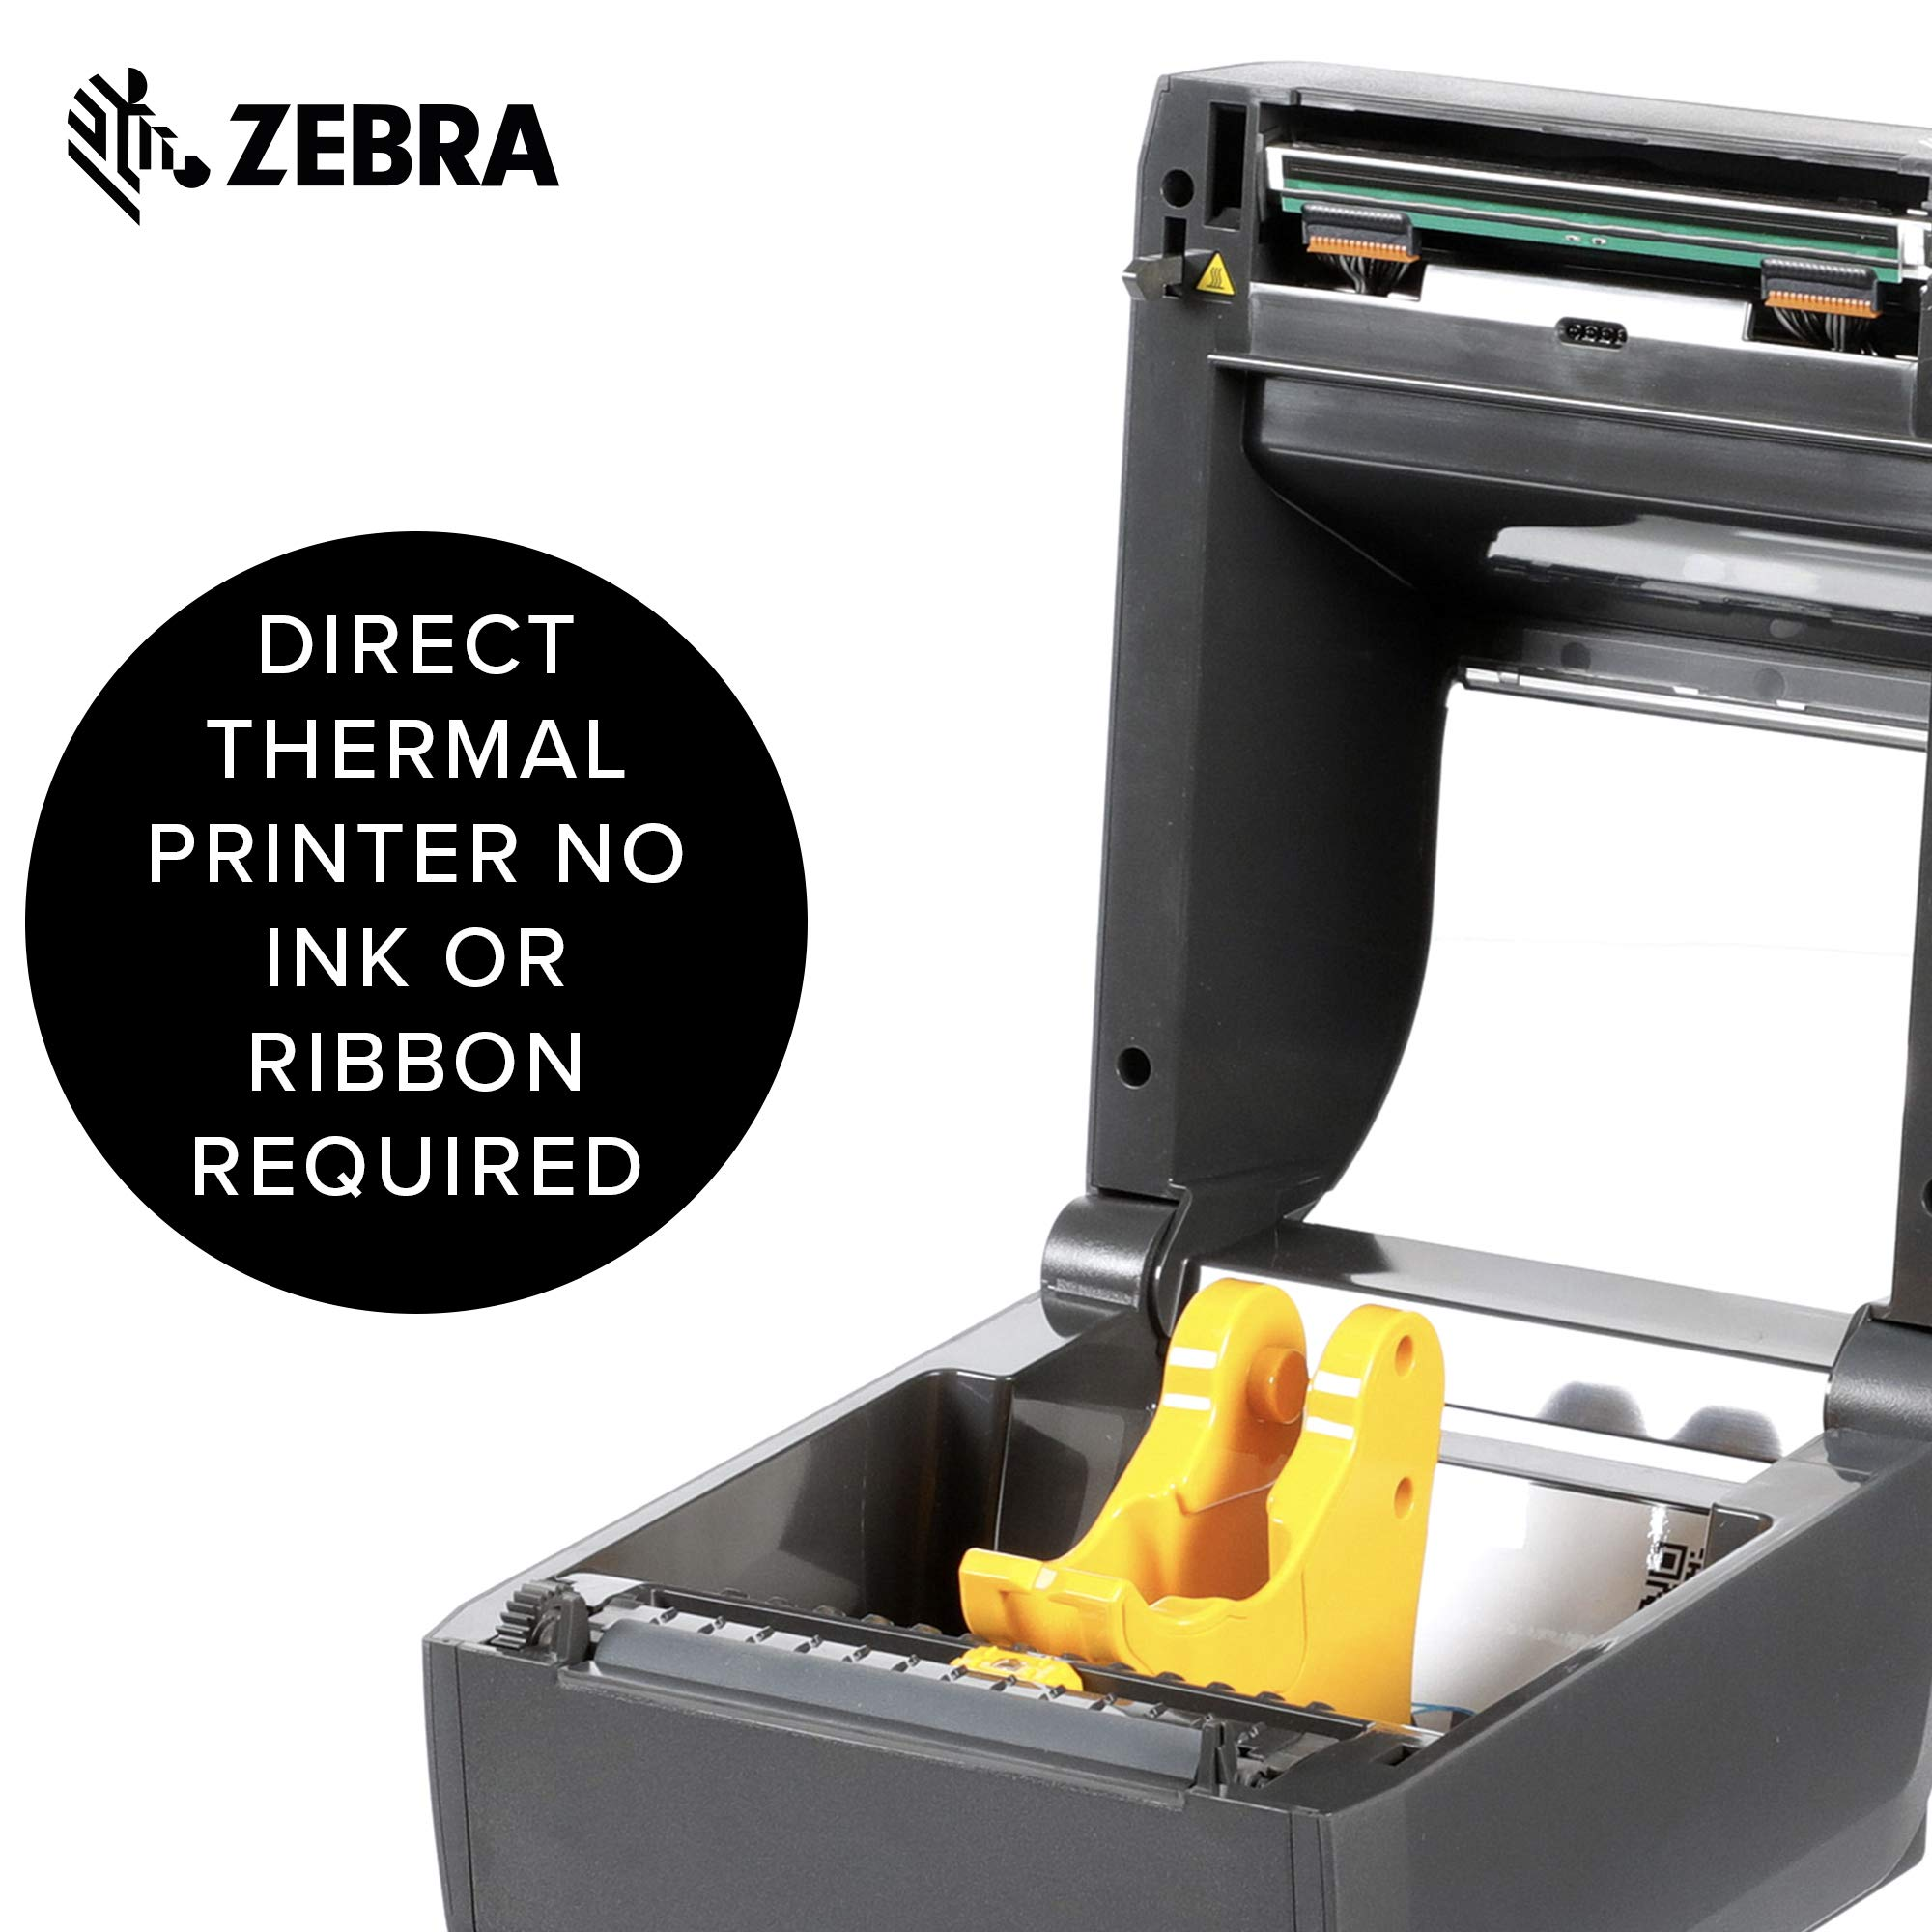 Zebra - ZD420d Direct Thermal Desktop Printer for Labels and Barcodes - Print Width 4 in - 300 dpi - Interface: USB - ZD42043-D01000EZ by Zebra Technologies (Image #4)